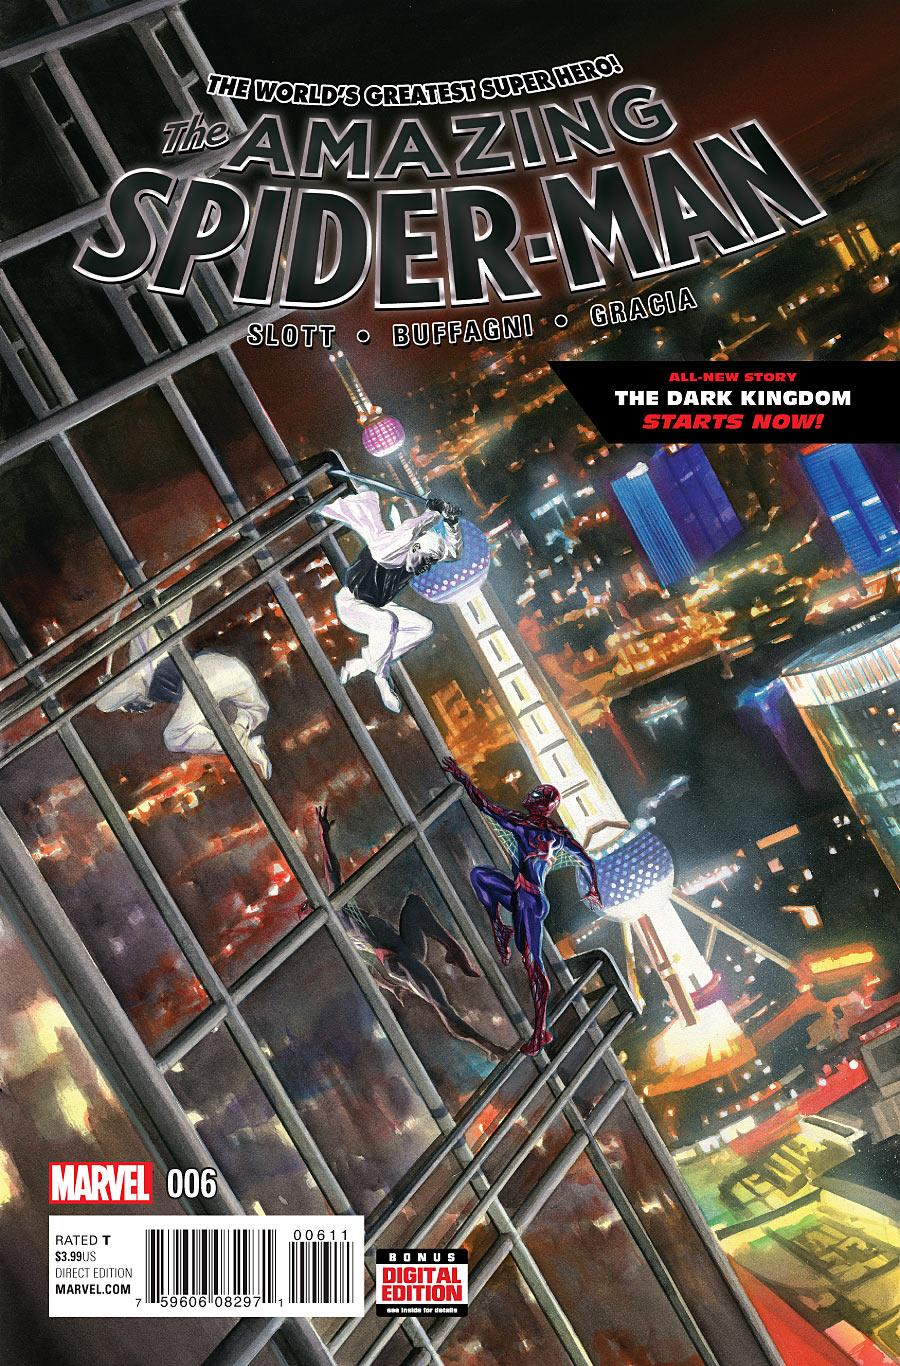 Amazing Spider-Man Vol. 4 #6